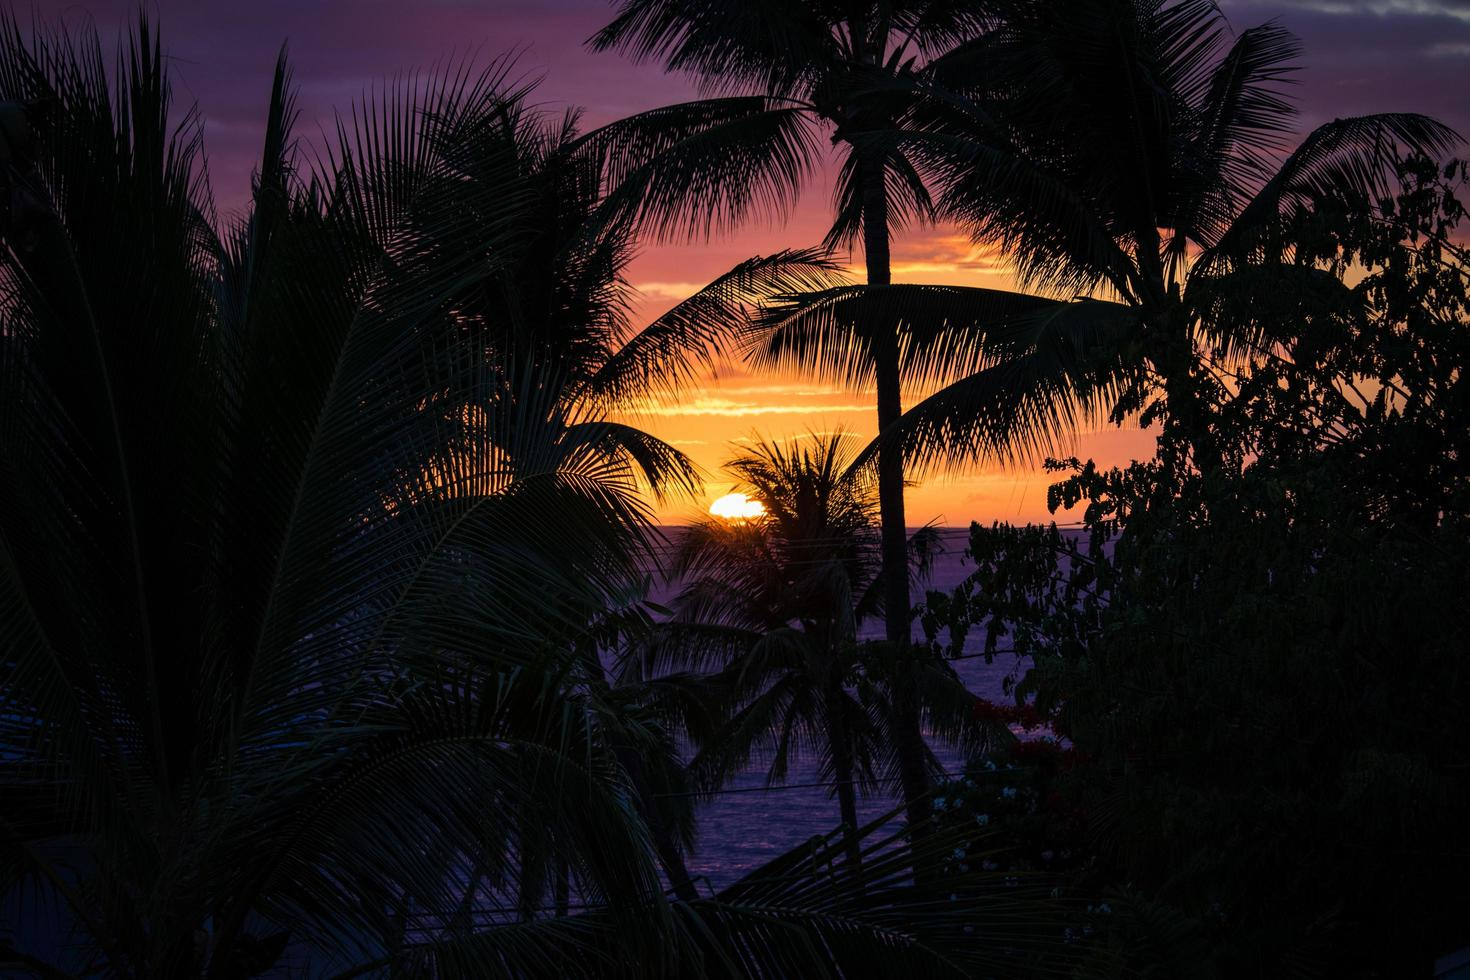 Silhouette of palm trees and a sunset photo